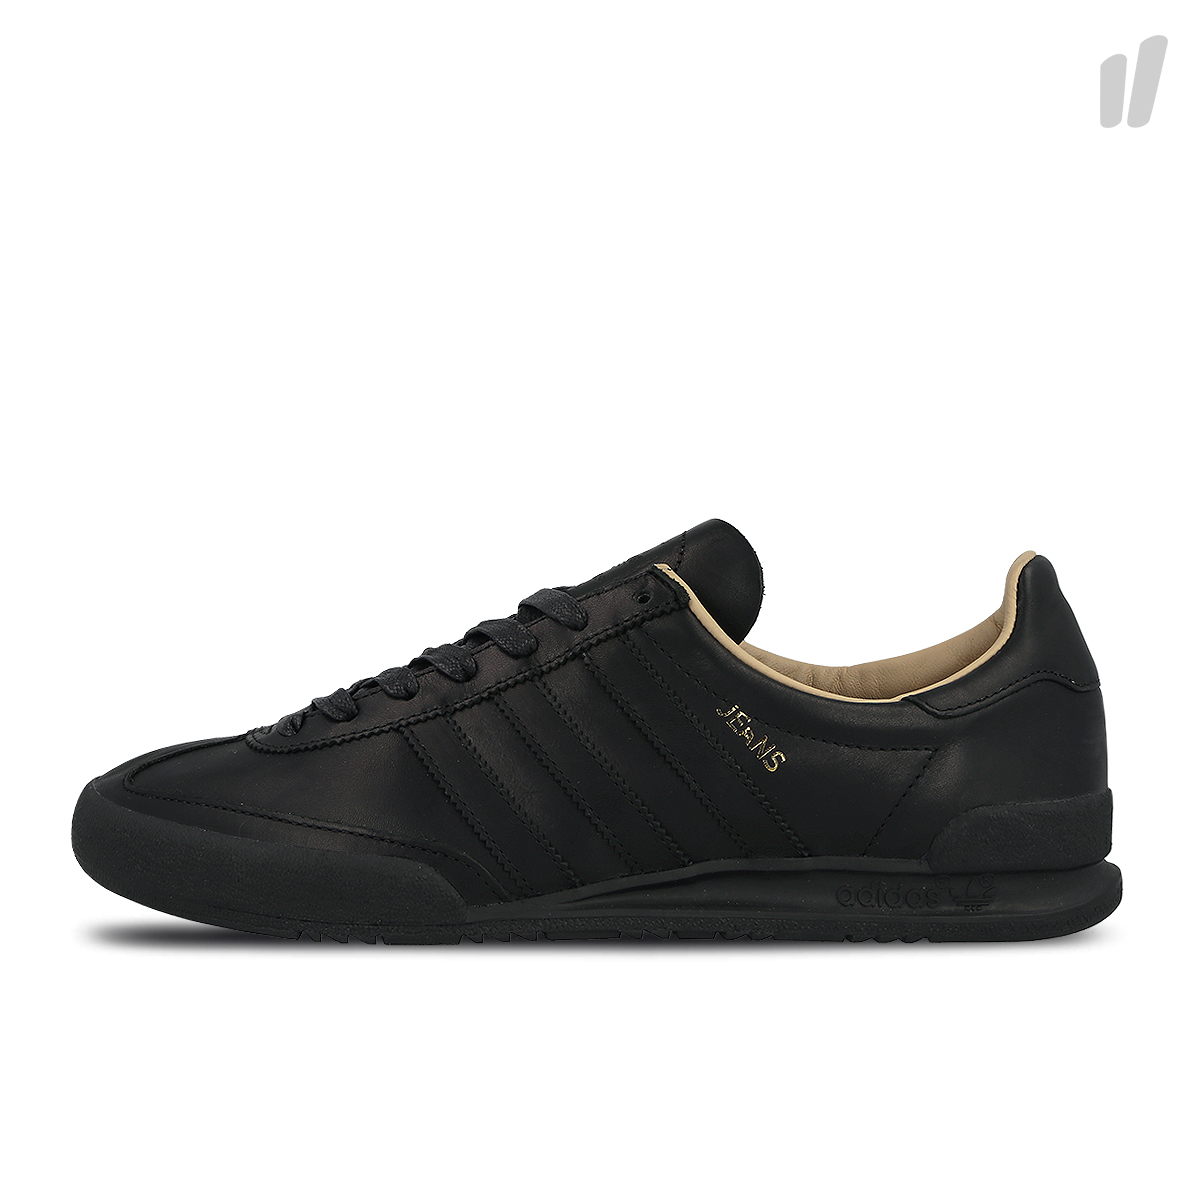 adidas originals jeans mk ii bb5272 retro